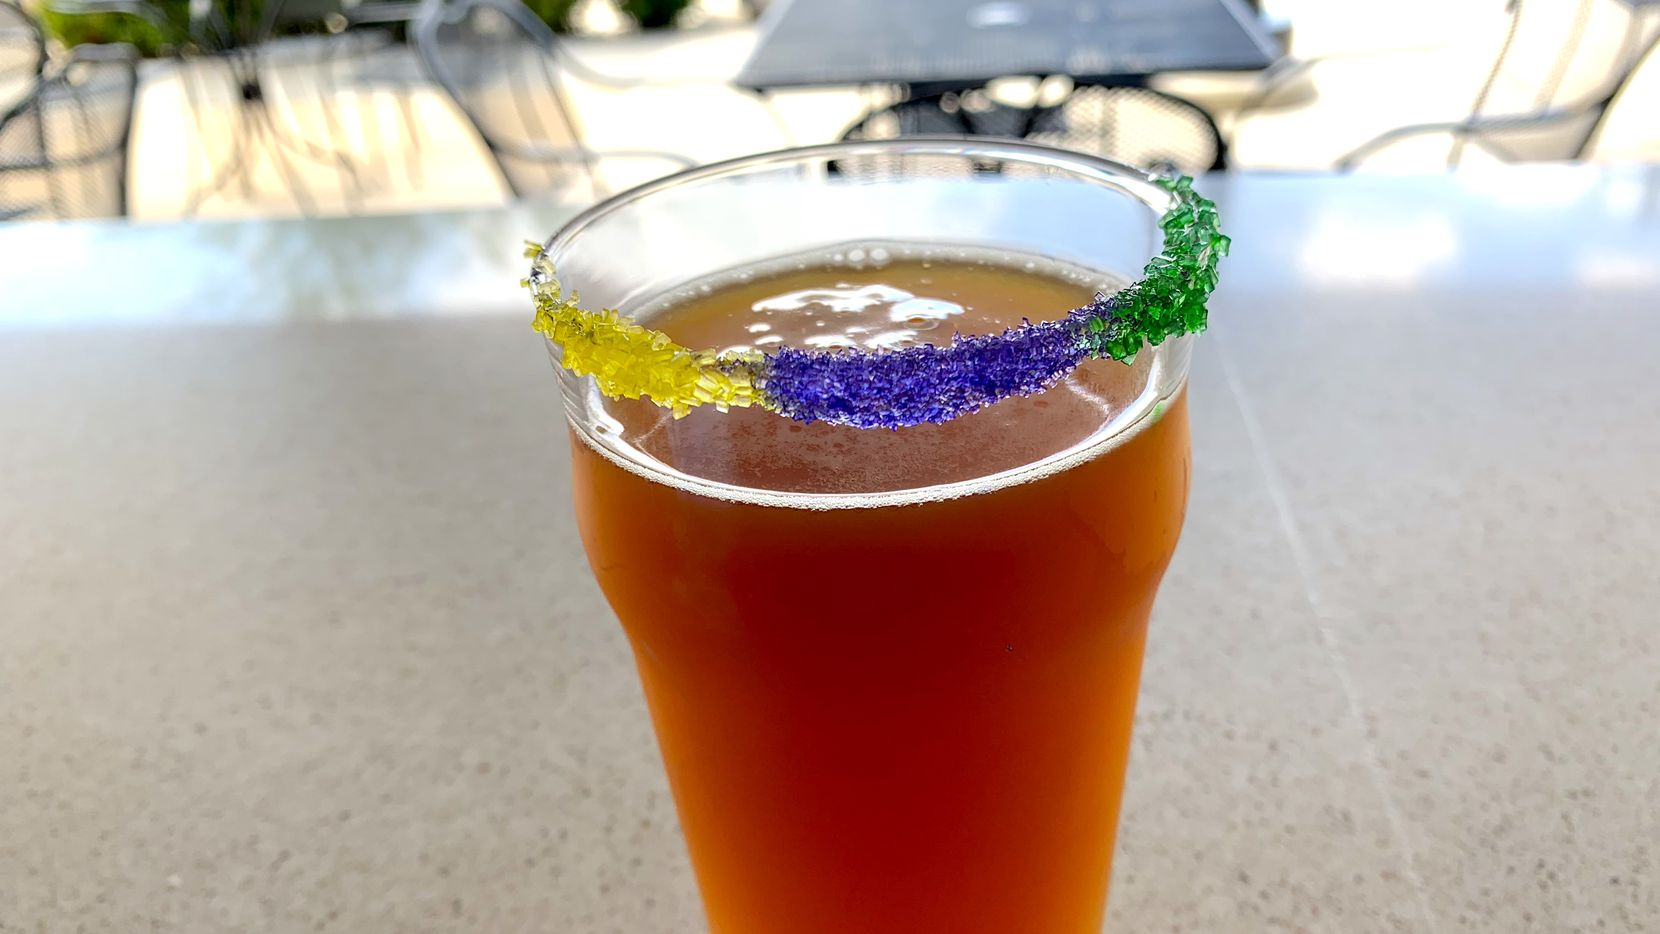 Neutral Ground Brewing in Fort Worth sells King Cake beer.